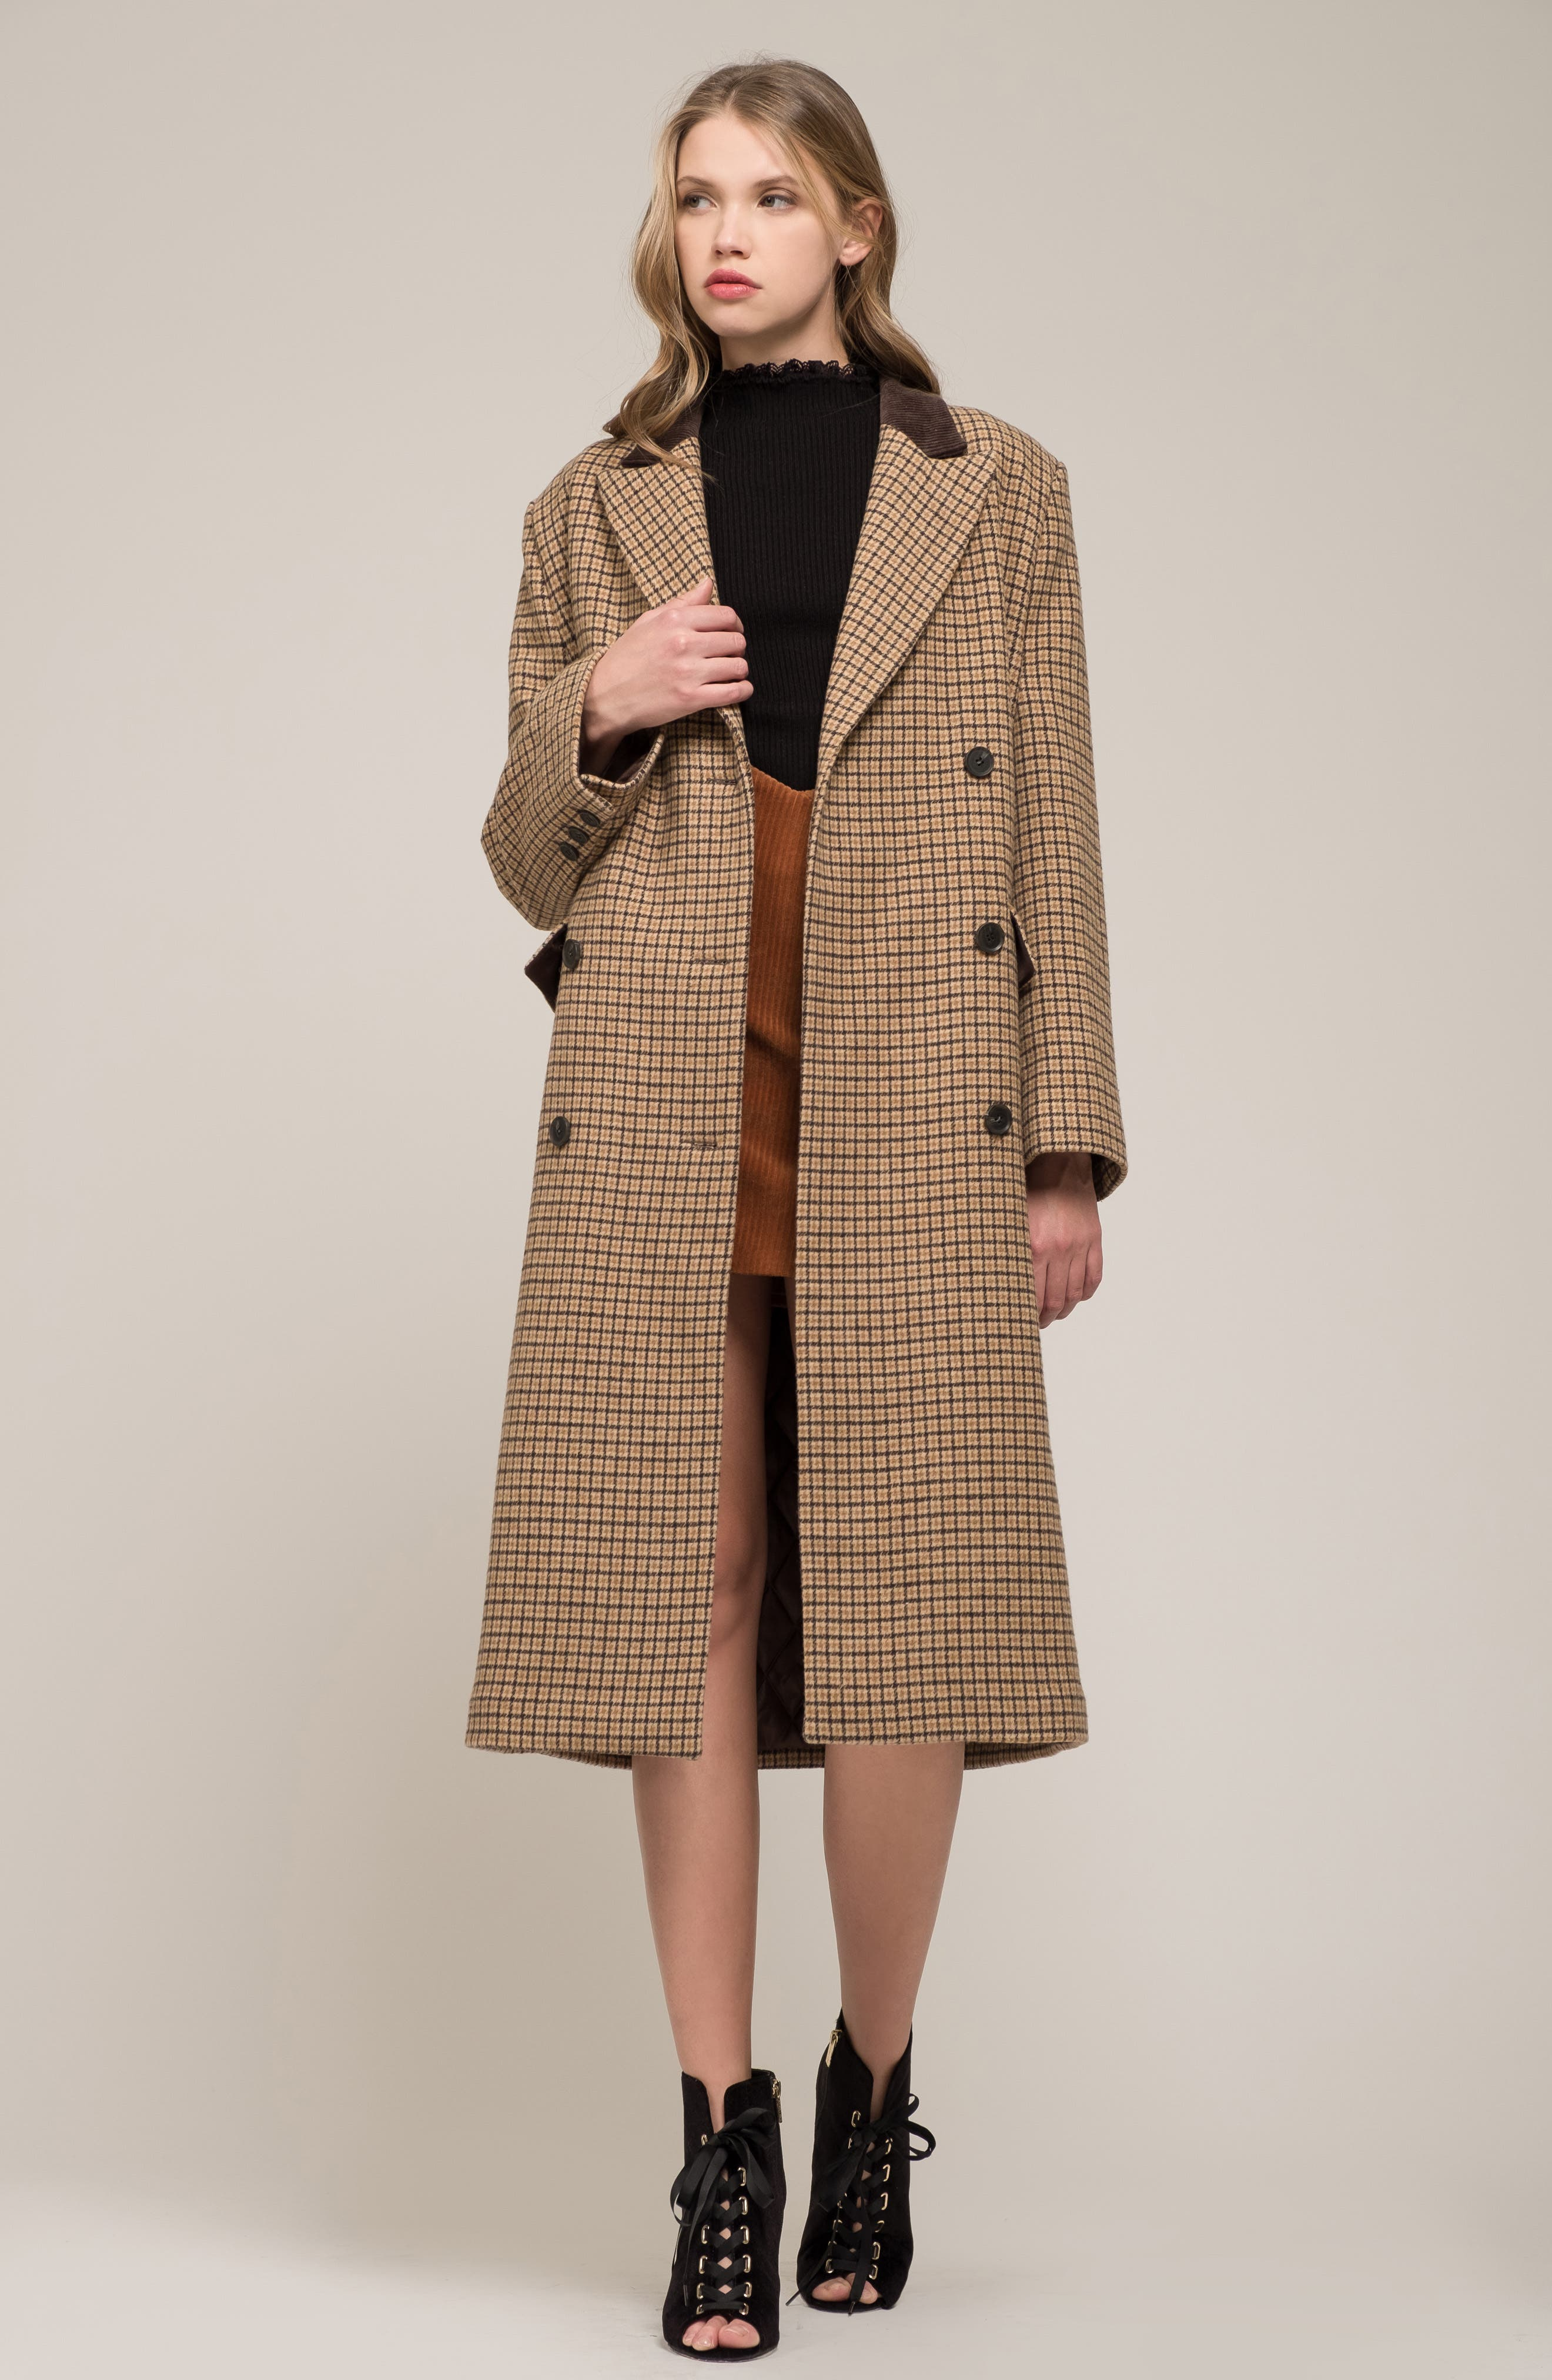 MOON RIVER,                             Houndstooth Double Breasted COat,                             Alternate thumbnail 8, color,                             BROWN PLAID